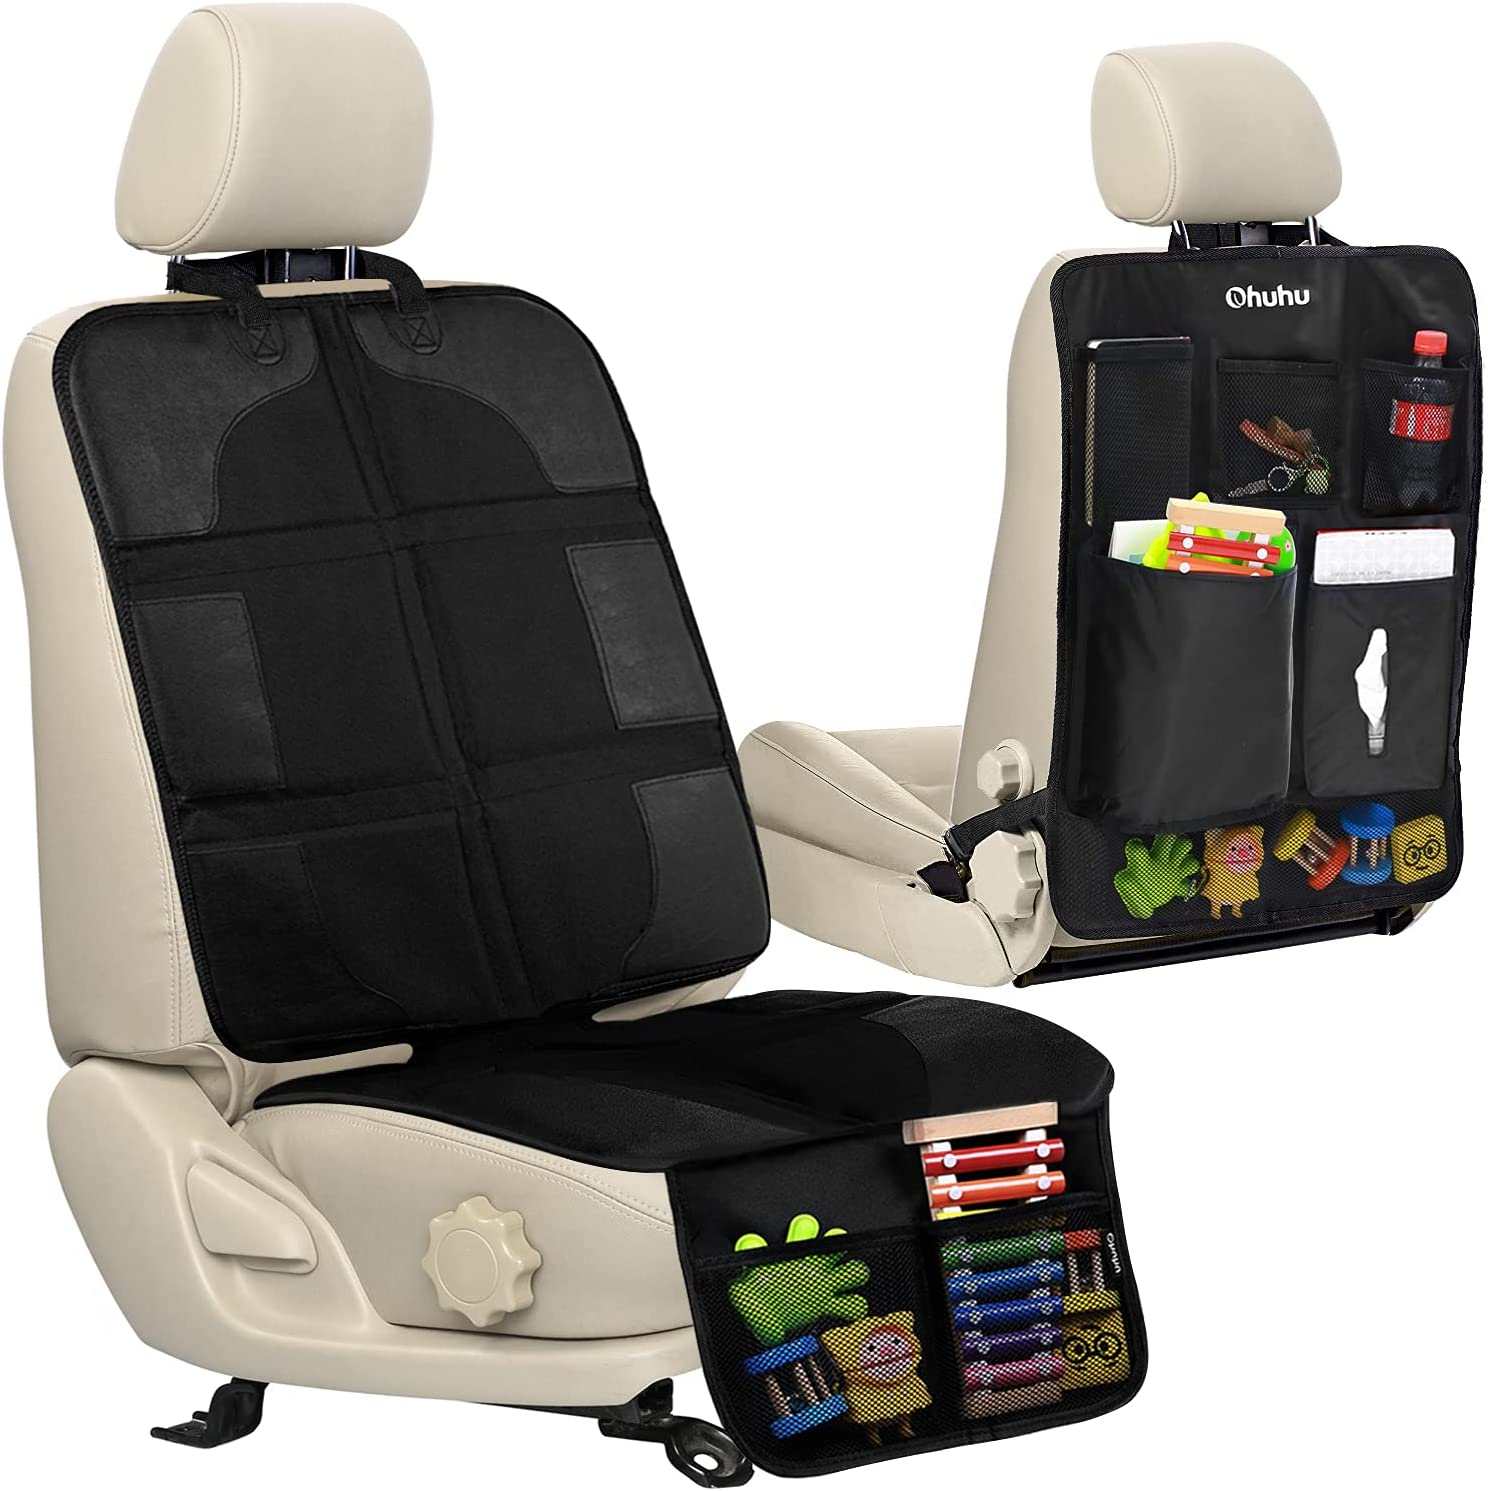 Car Seat Protector and Kick Mat, Ohuhu Thickest Auto Seat Cover for Carseats and Kids Kick Mats with Backseat Organizer